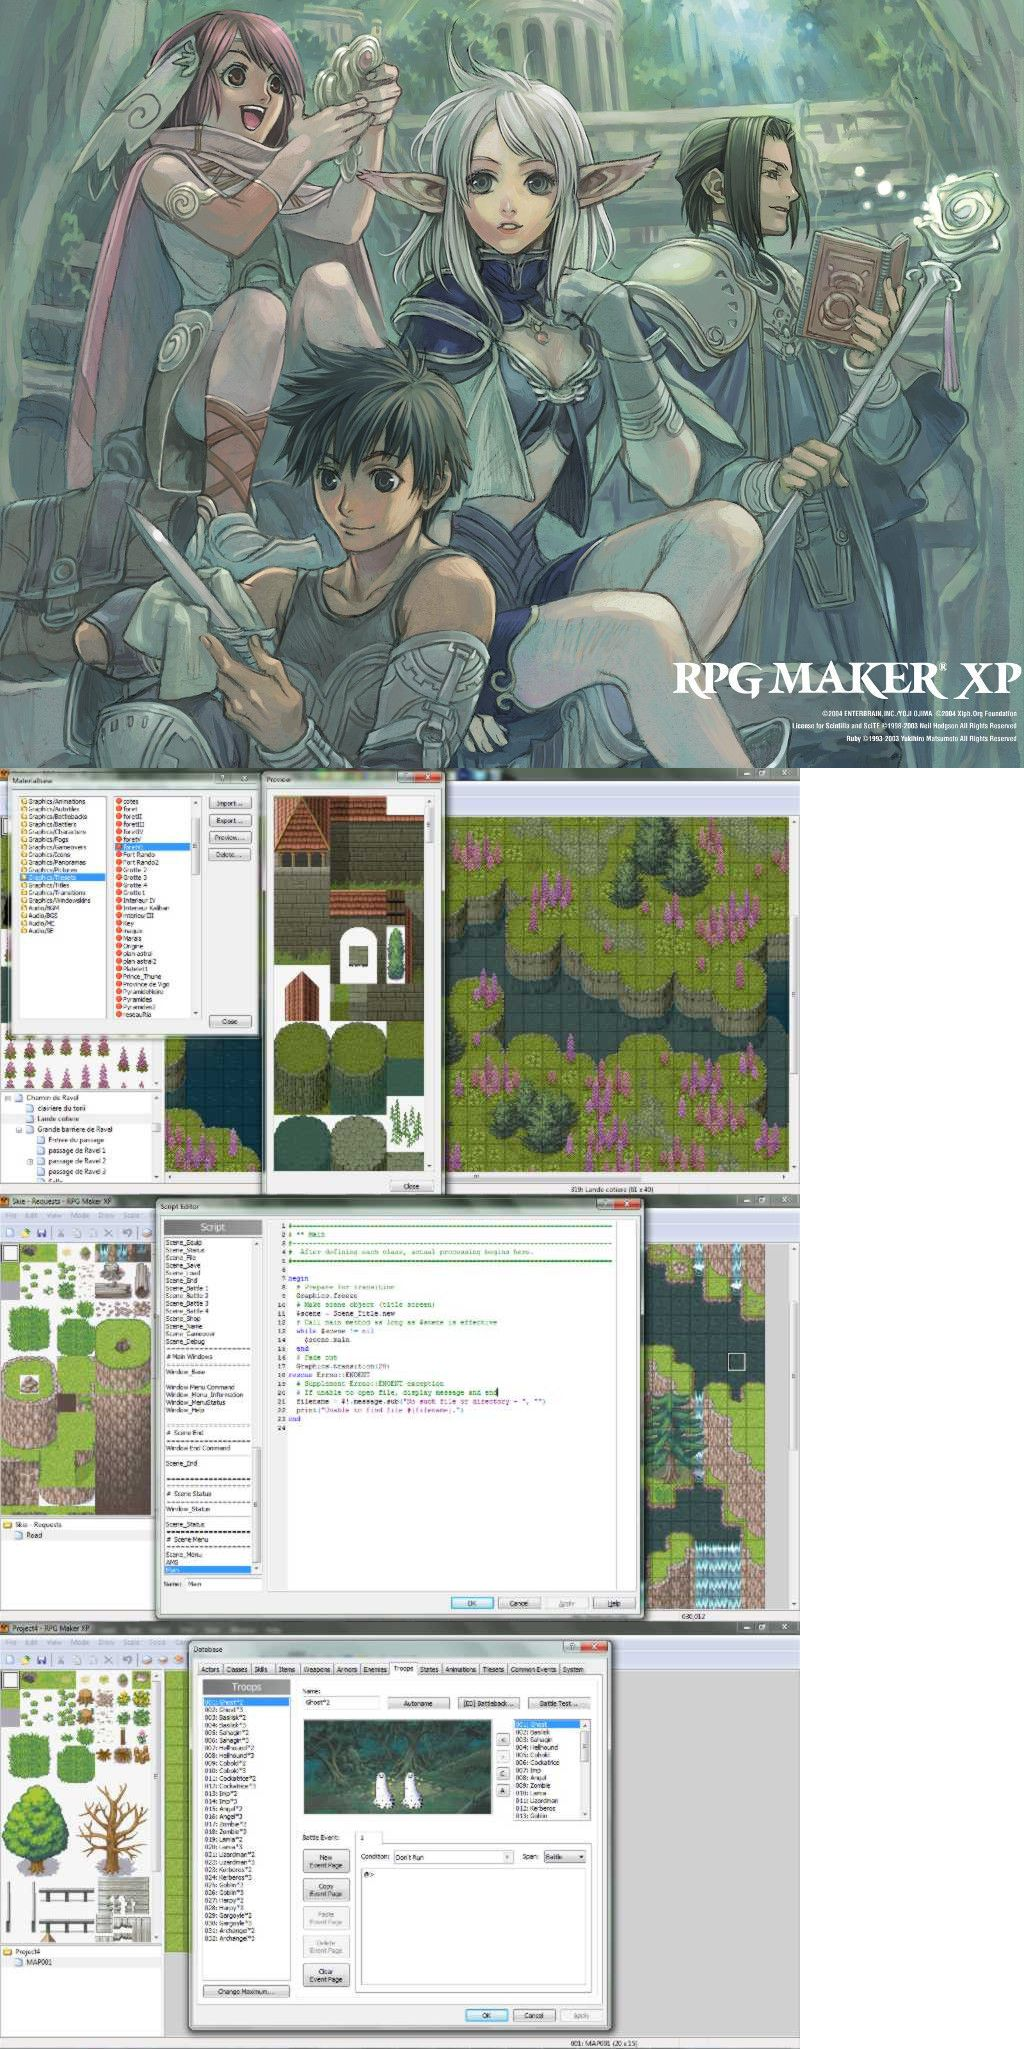 Other Role Playing Games 1183: Rpg Maker Xp *New* *Look